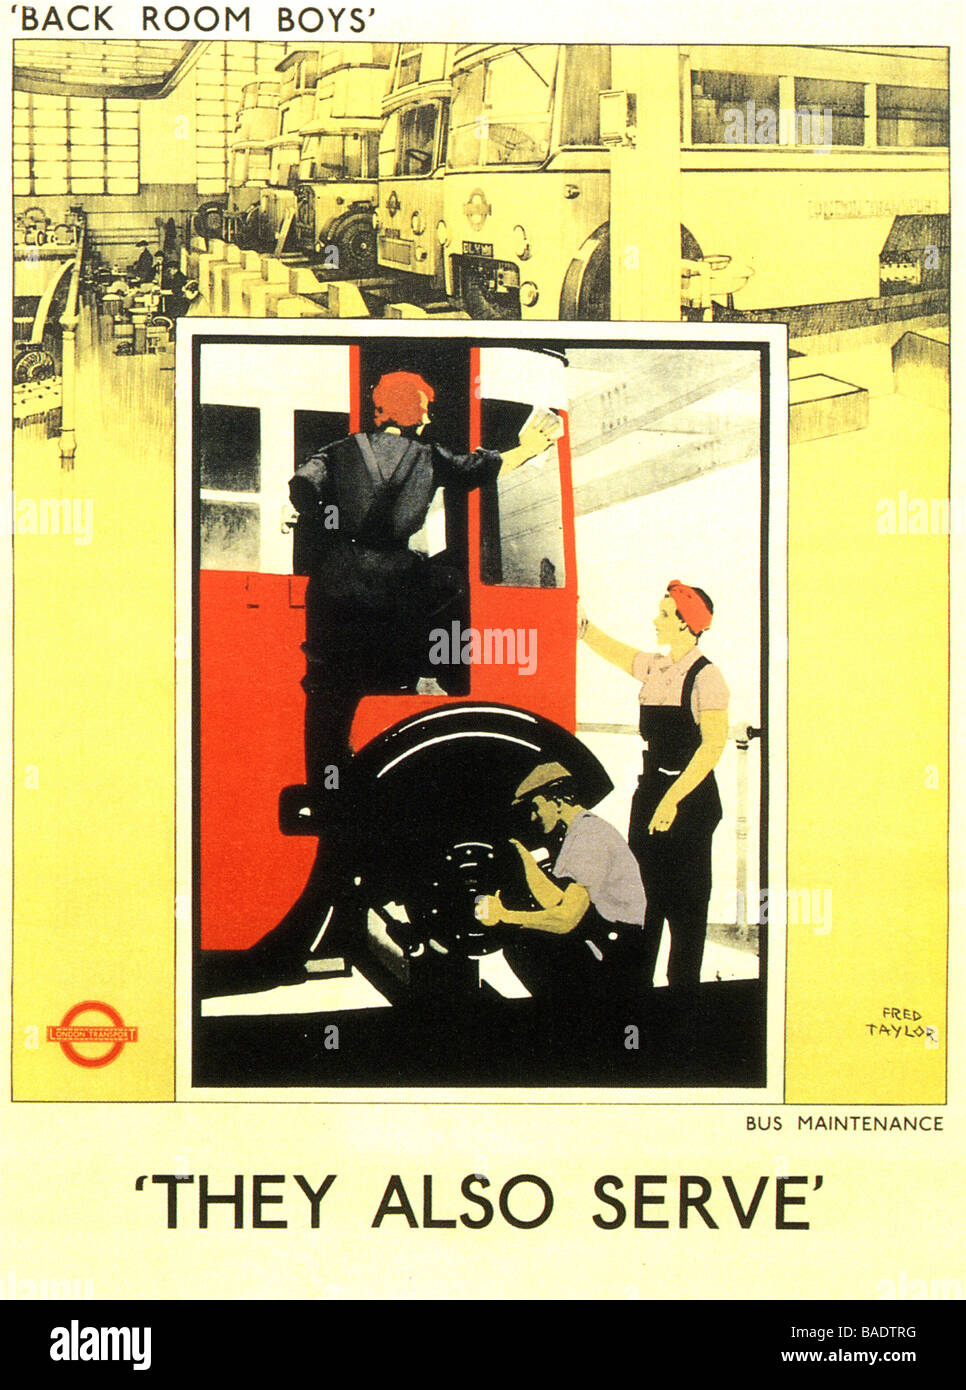 THEY ALSO SERVE 1942 London Transport advert designed by Fred Taylor - Stock Image